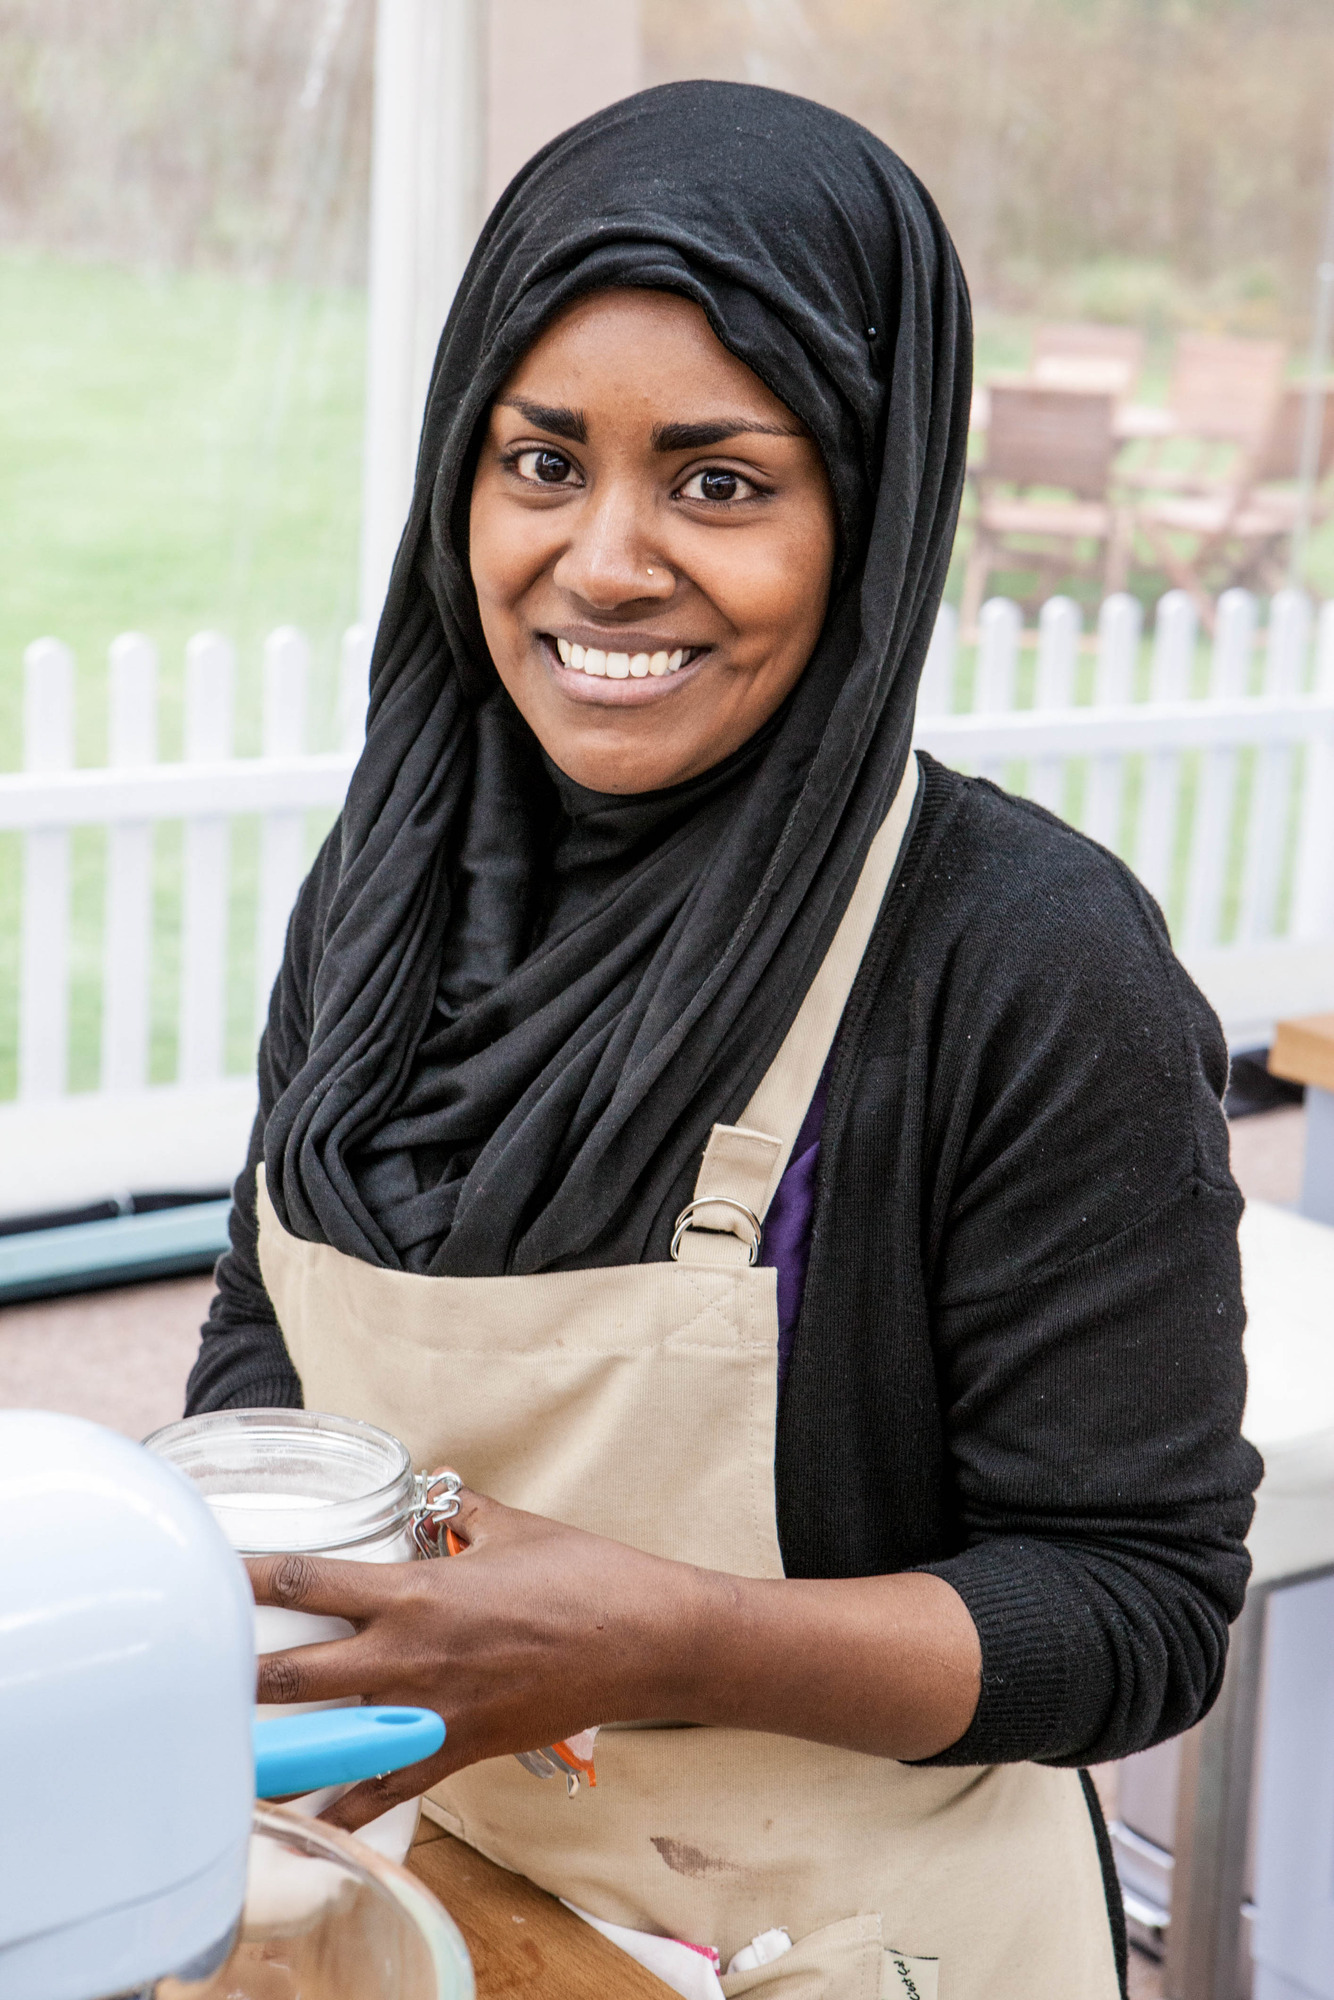 Nadiya from The Great British Bake Off